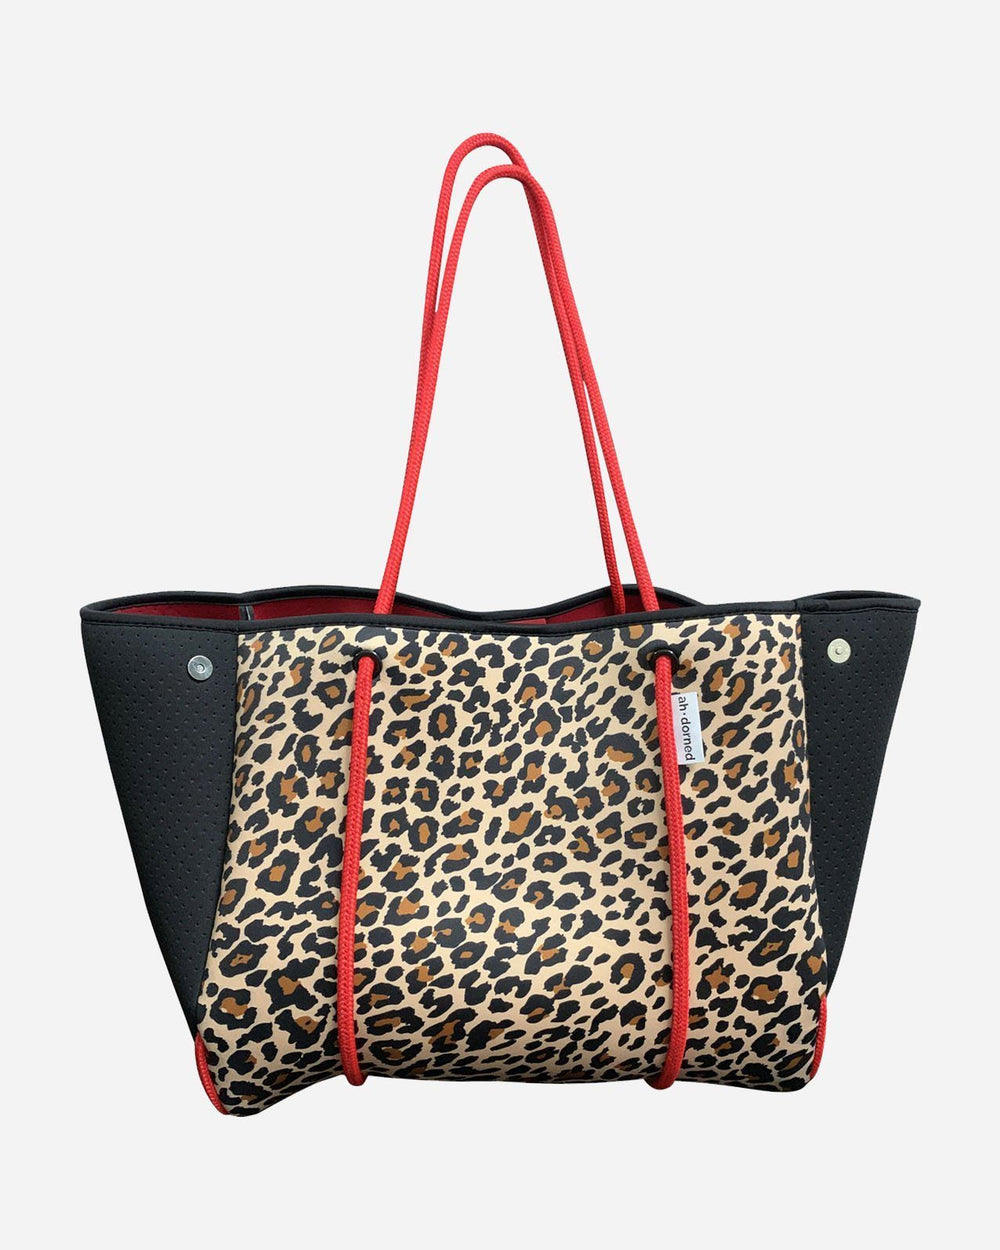 Ahdorned Black Perforated & Leopard Neoprene Tote